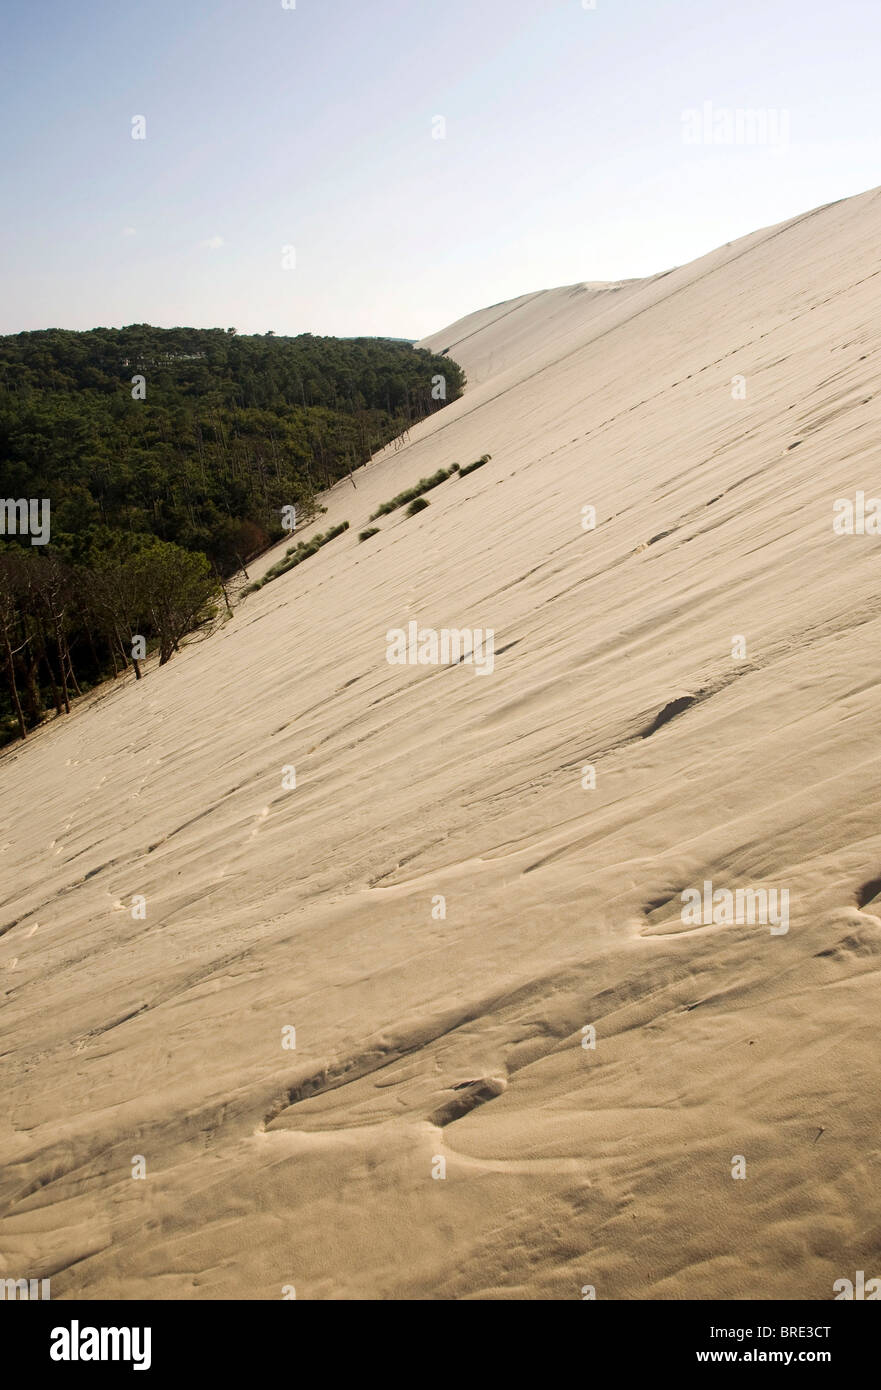 Pine forest at the dune of Pyla, Dune du Pilat, biggest dune in Europe on the Atlantic coast near Arcachon, Departement - Stock Image